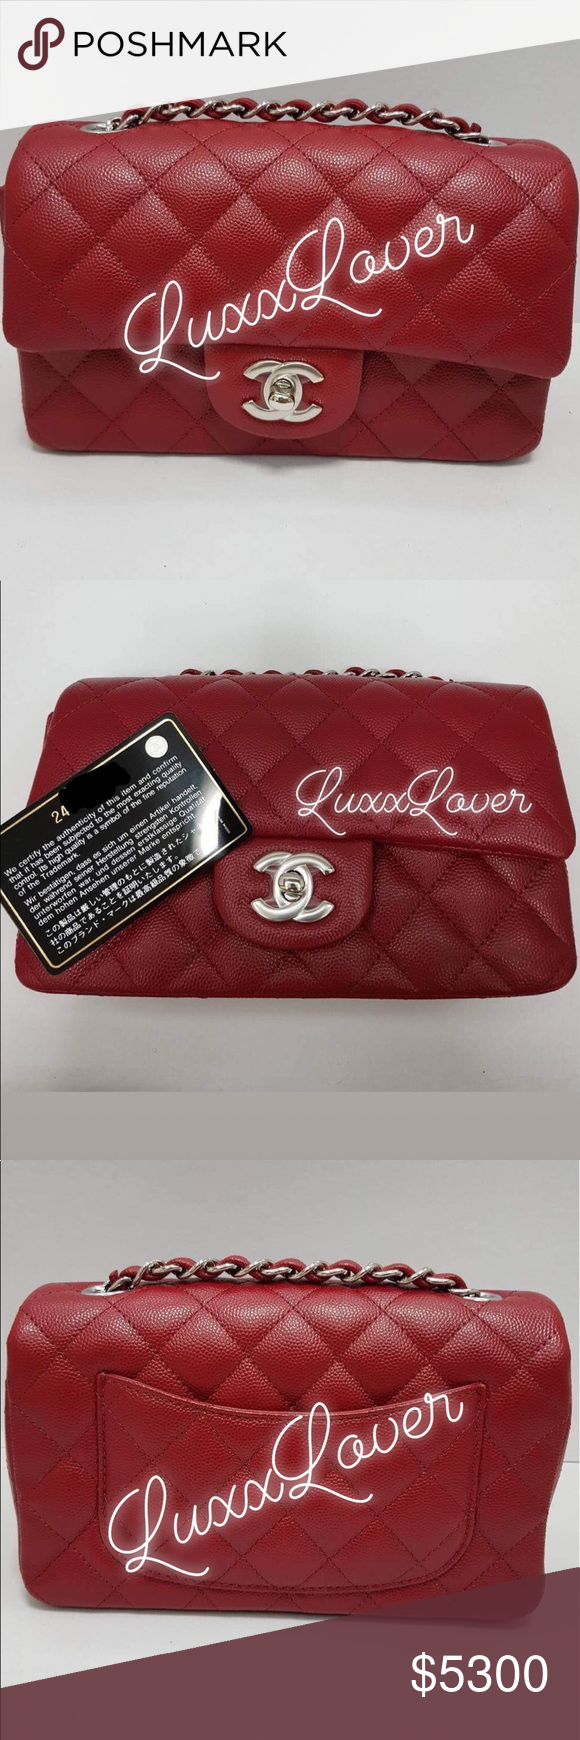 c634d682fd014 17B CC Red mini rectangle flap. BNIB never used. BNIB authentic 17B red  Chanel Mini Rectangle flap. Comes with complete box set. CHANEL Bags  Crossbody Bags